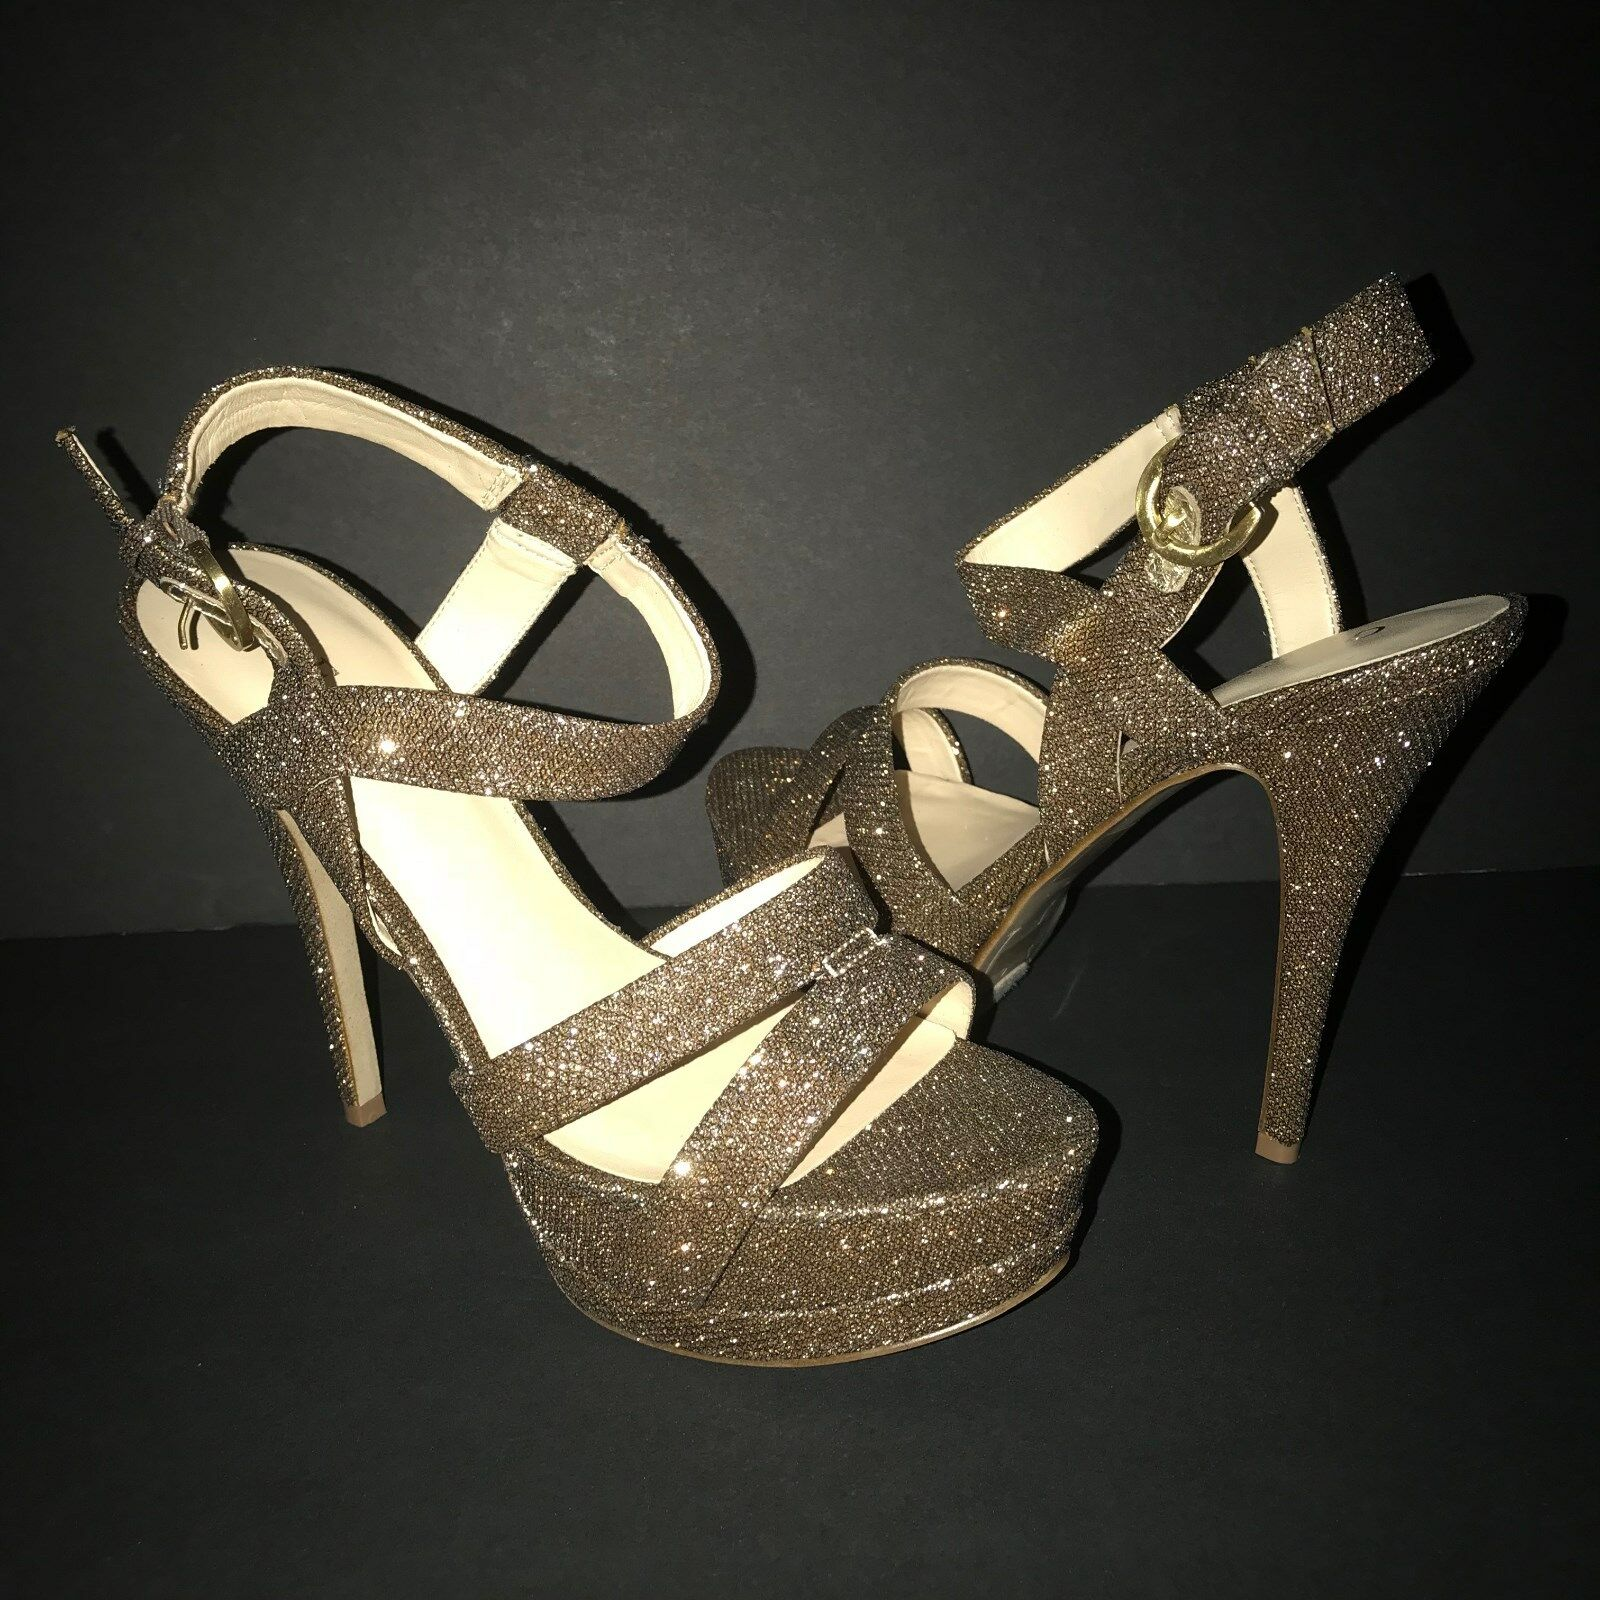 NEW with Box GUESS Glitter Pumps, Gold fabric, size 7